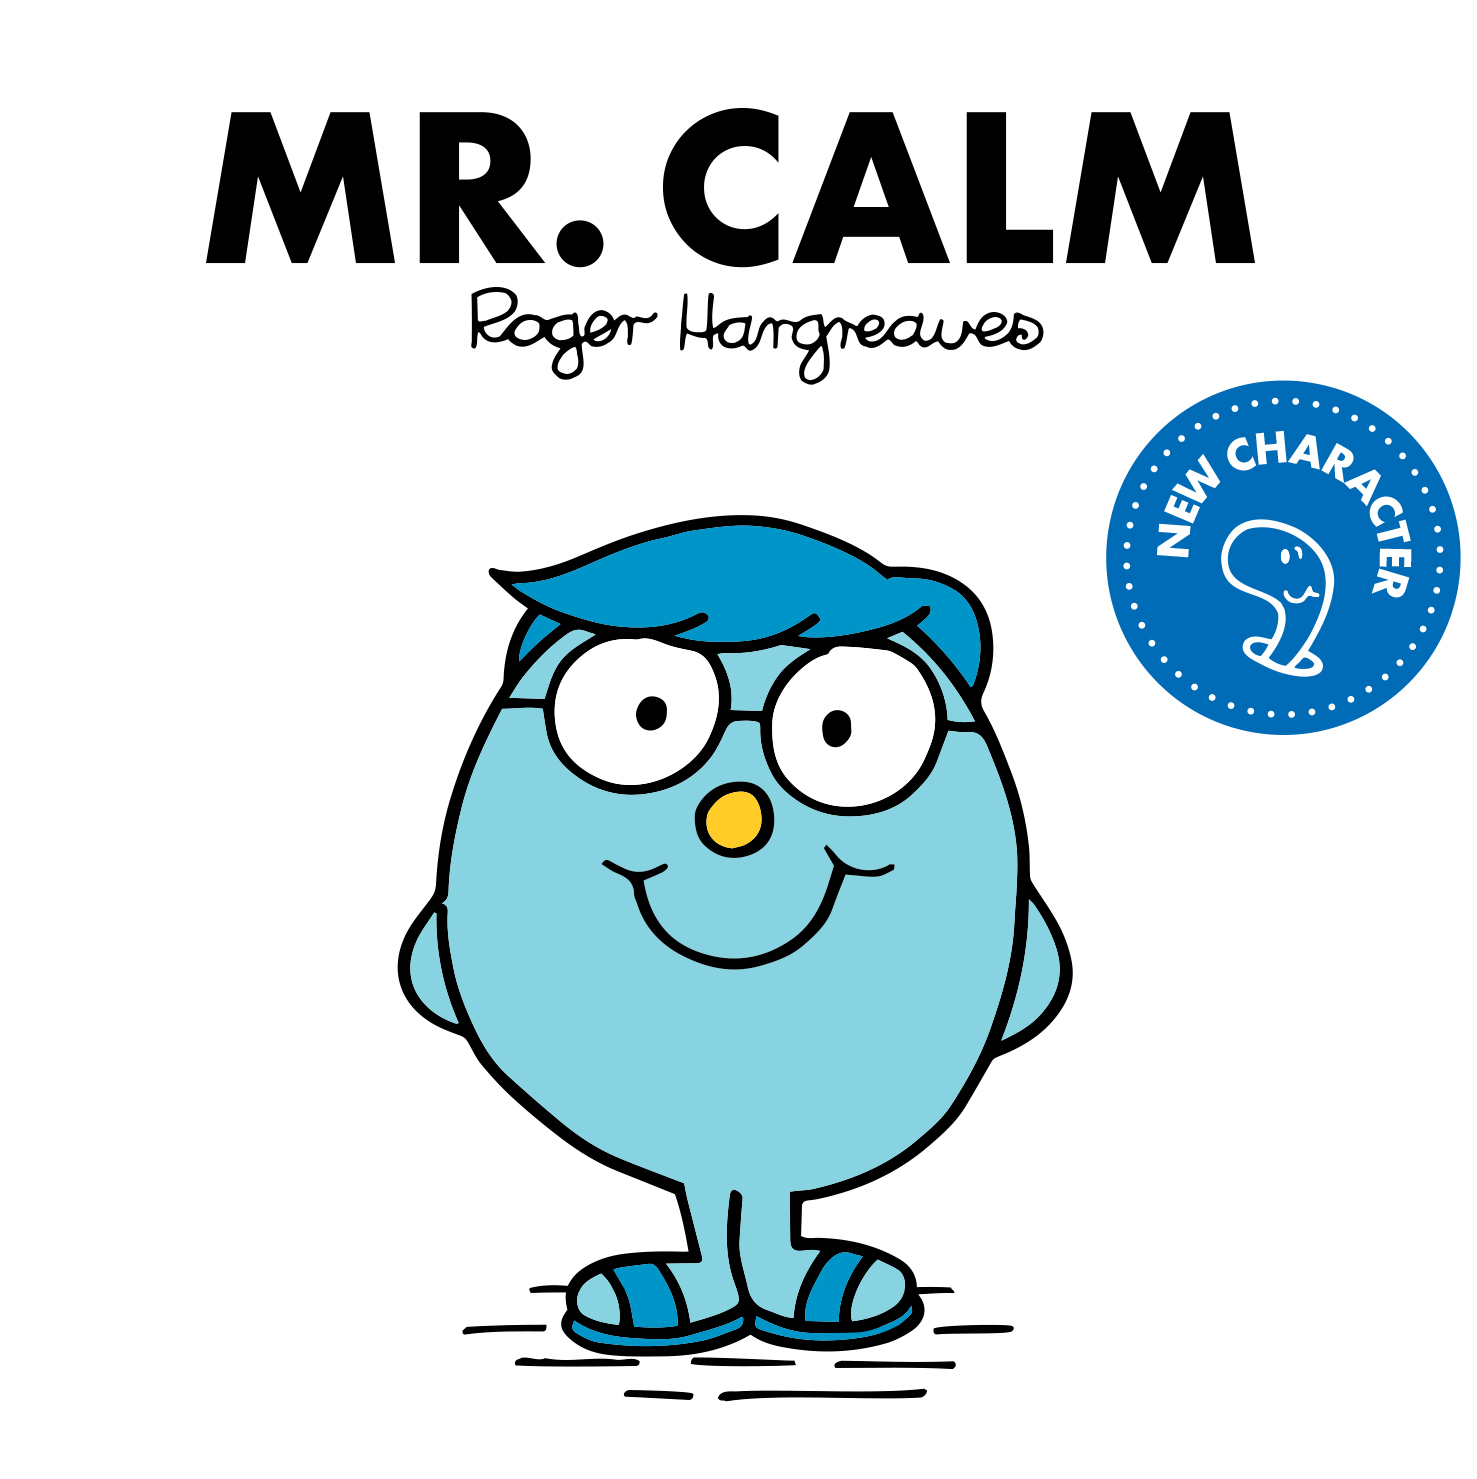 Little Miss Brave and Mr Calm unveiled as new Mr Men characters, 24441513 7470 420f 99c3 7f57d462177b%, 4-5, 2-3%